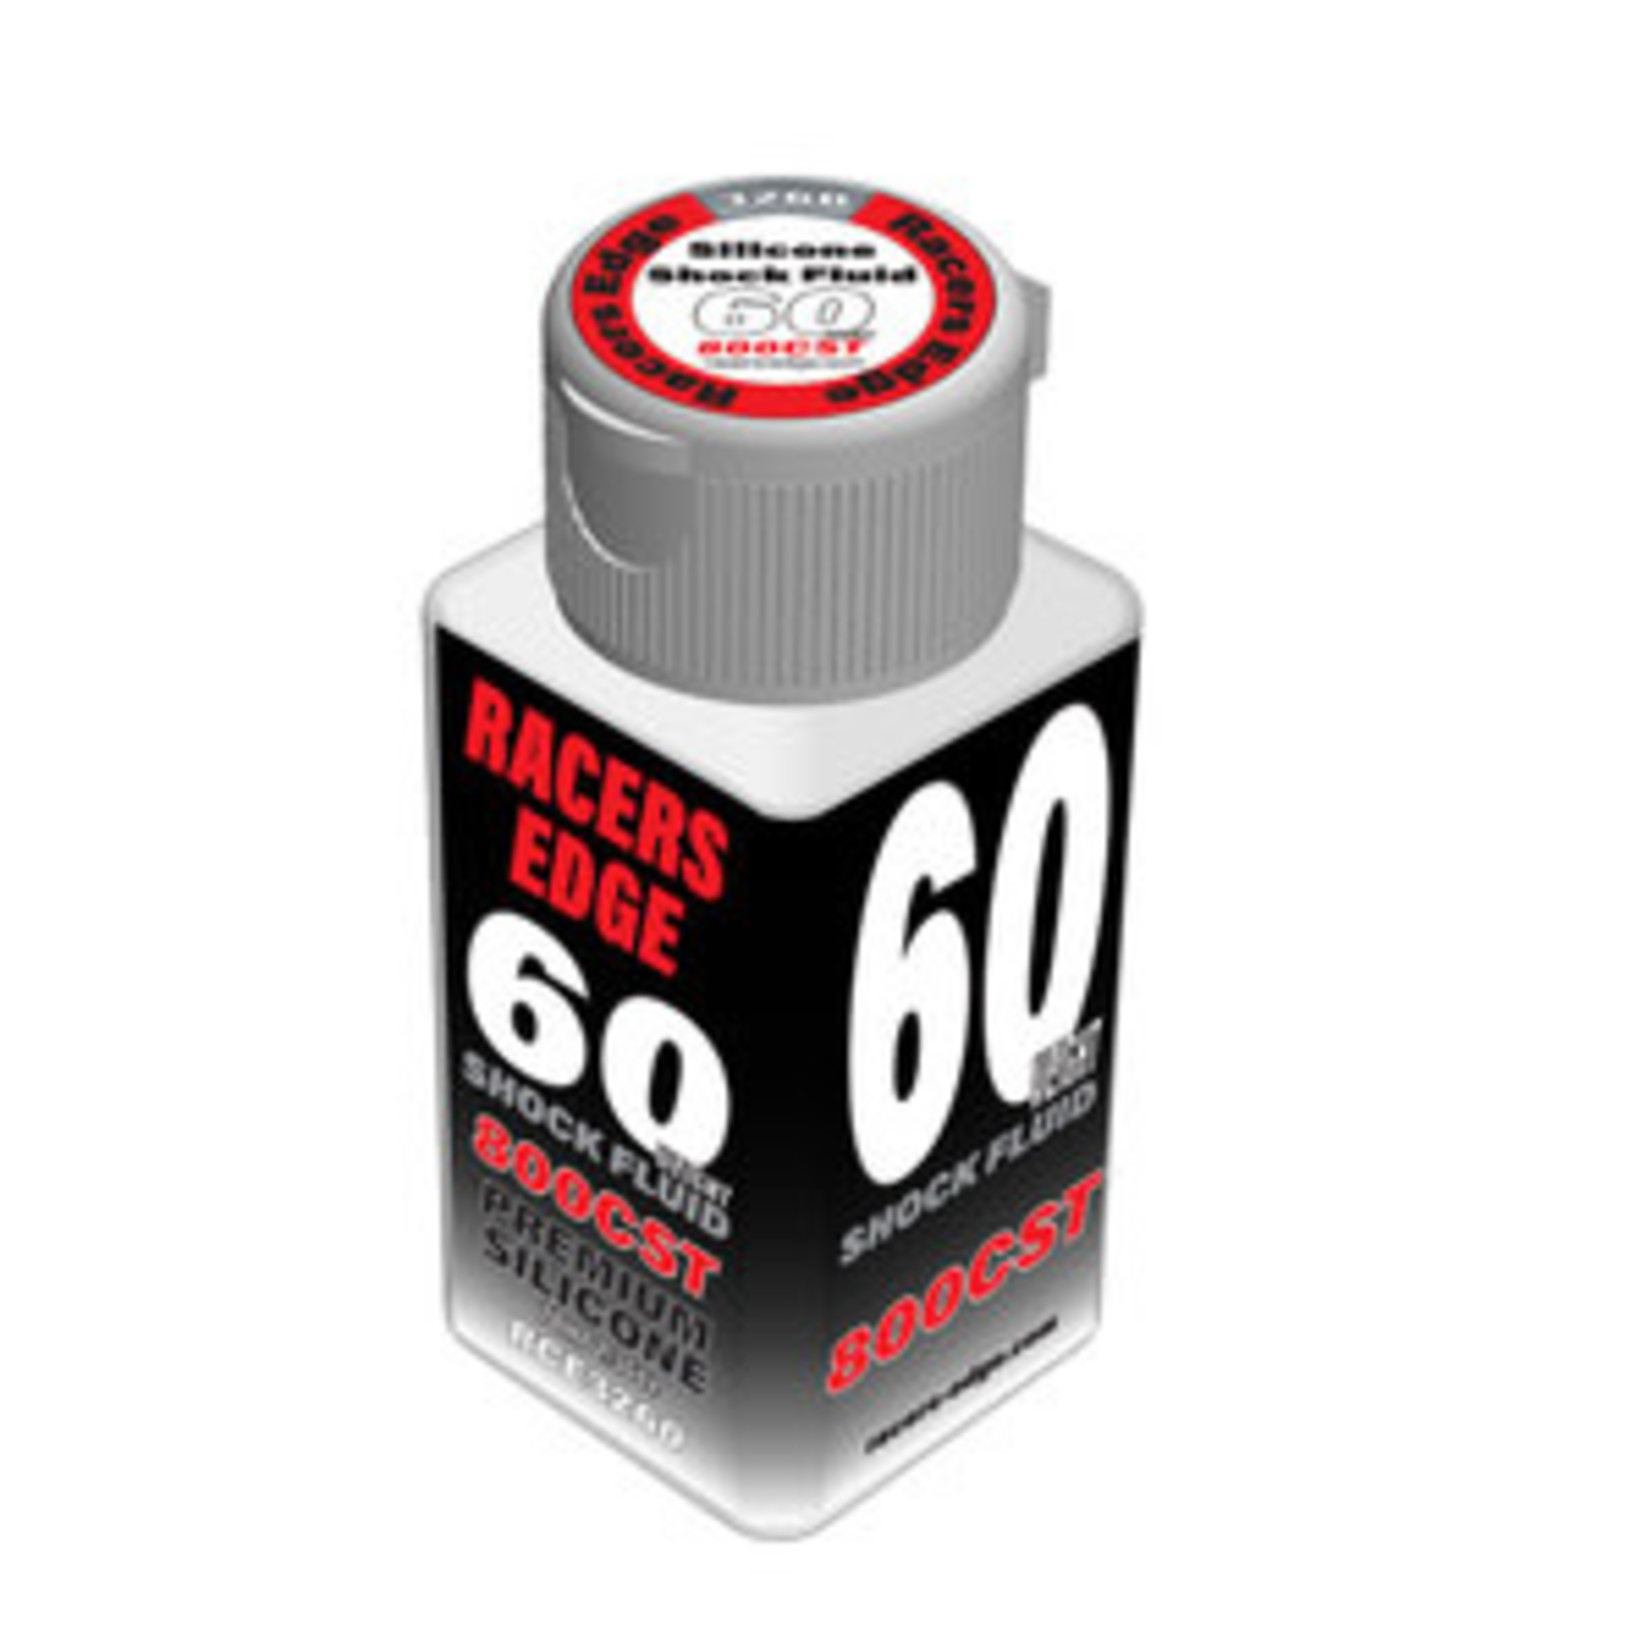 Racers Edge 60 Weight, 800cSt, 70ml 2.36oz Pure Silicone Shock Oil